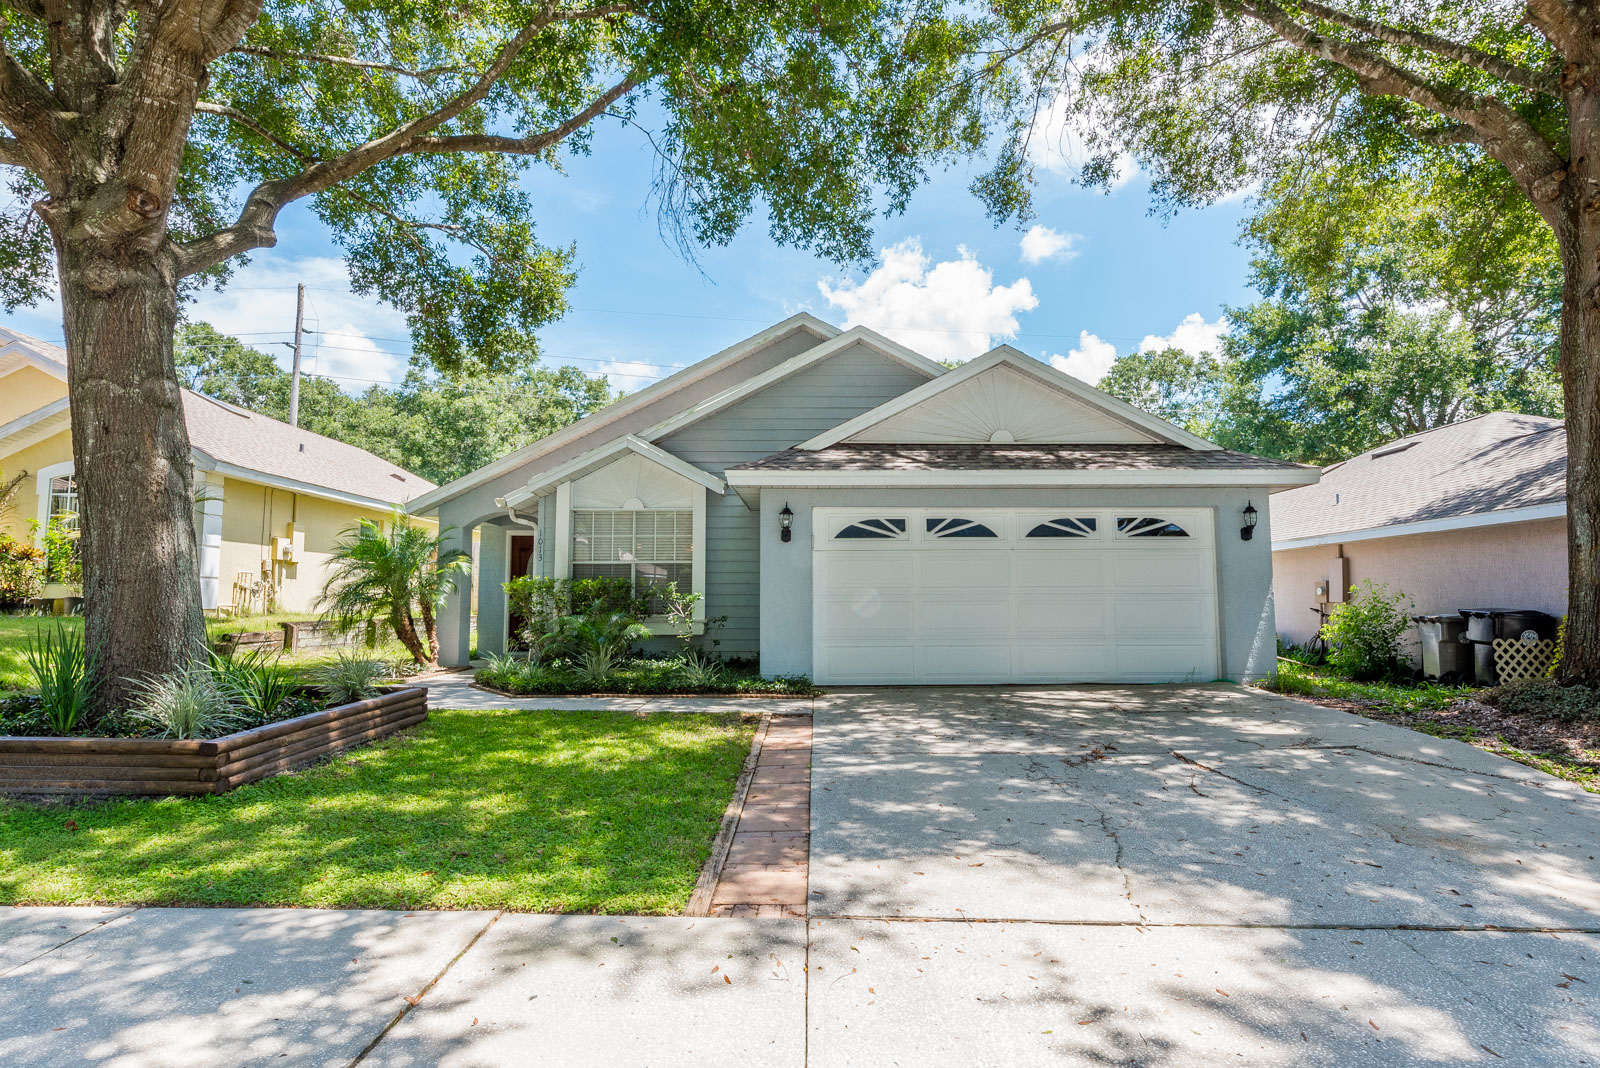 Live near the best Apopka has to offer! Your new home is located in a serene community with **LOW HOA** fees. This move-in ready home showcases an **UPDATED KITCHEN**, TILE & WOOD LAMINATE FLOORS, VAULTED CEILINGS, and more. Don't miss out on what could be YOUR home!